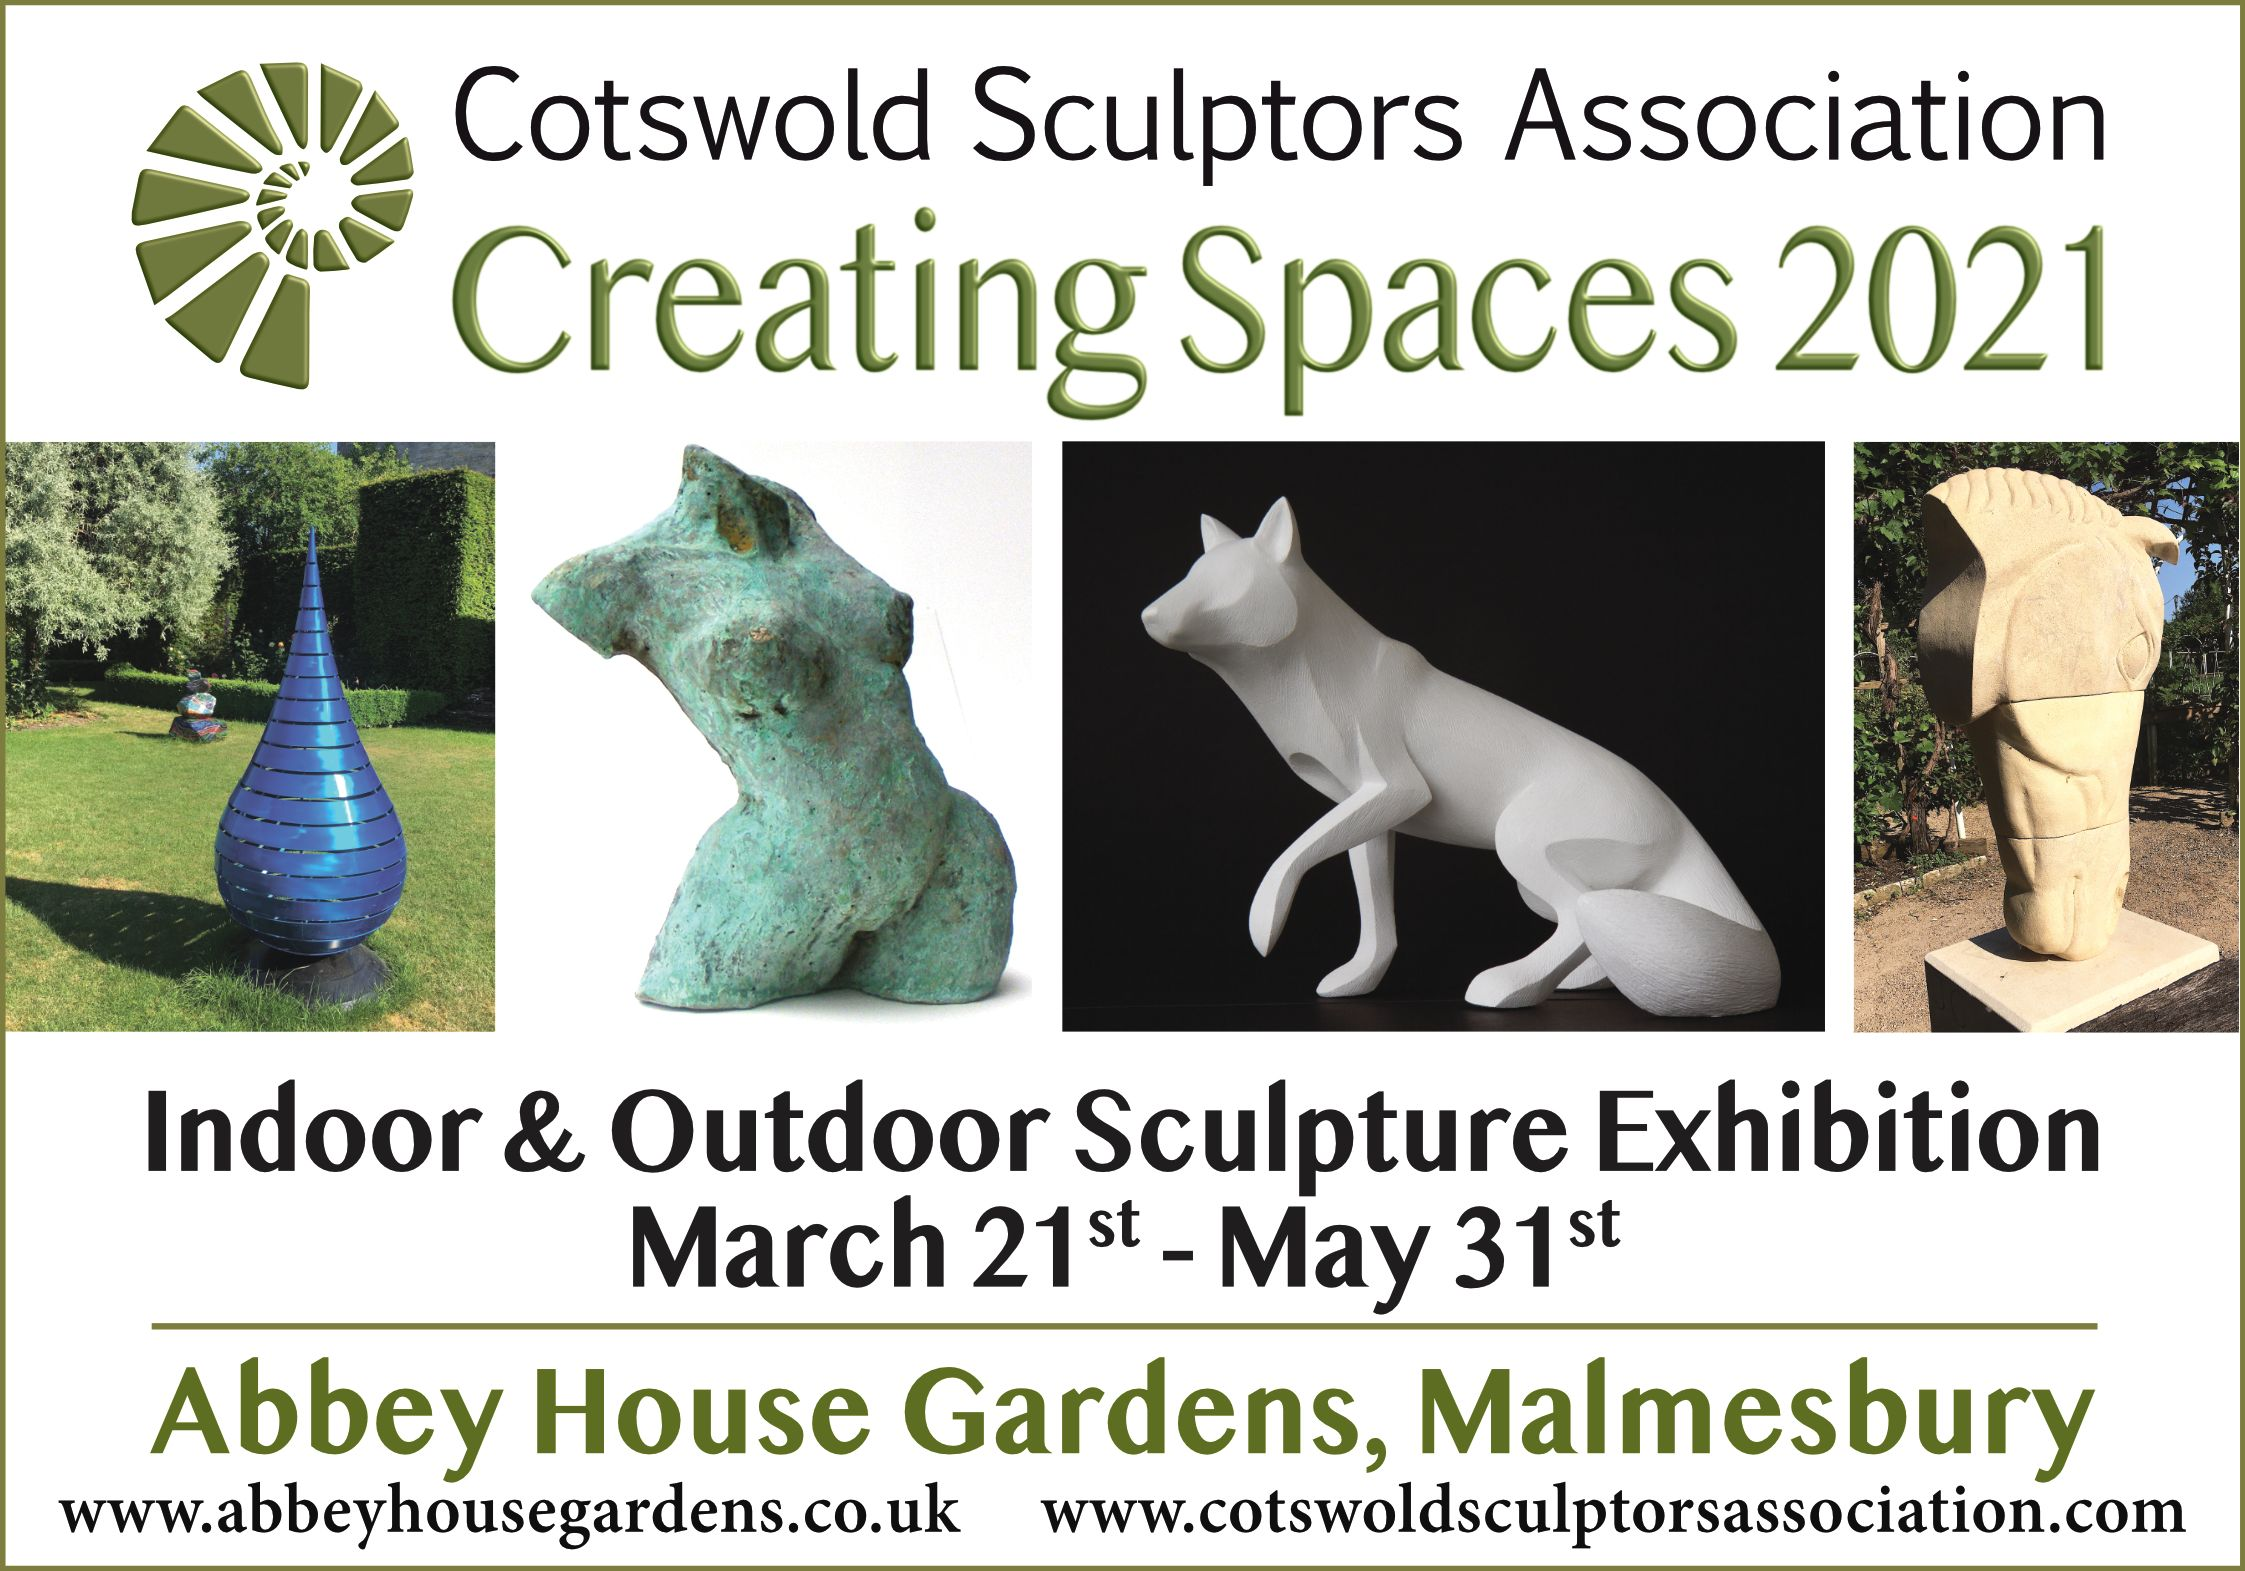 Creating Spaces 2021: Cotswold Sculptors Association Exhibition at Abbey House Gardens, Malmesbury.